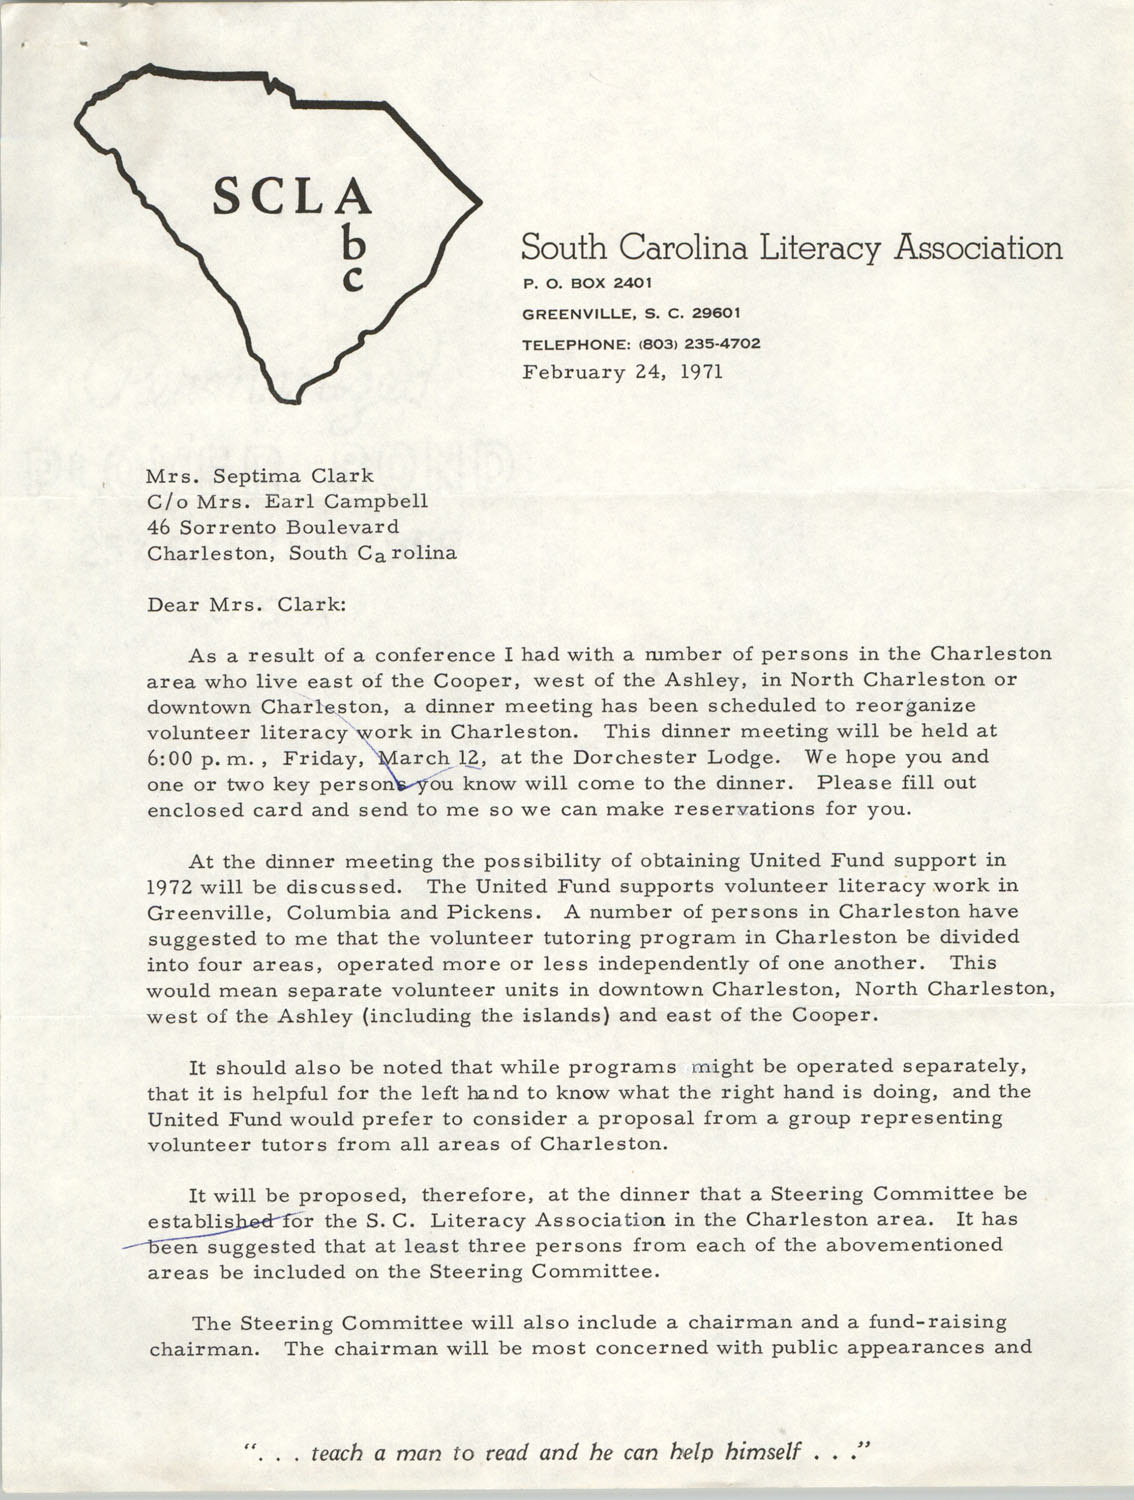 Letter from Ben Bagwell to Septima P. Clark, February 24, 1971